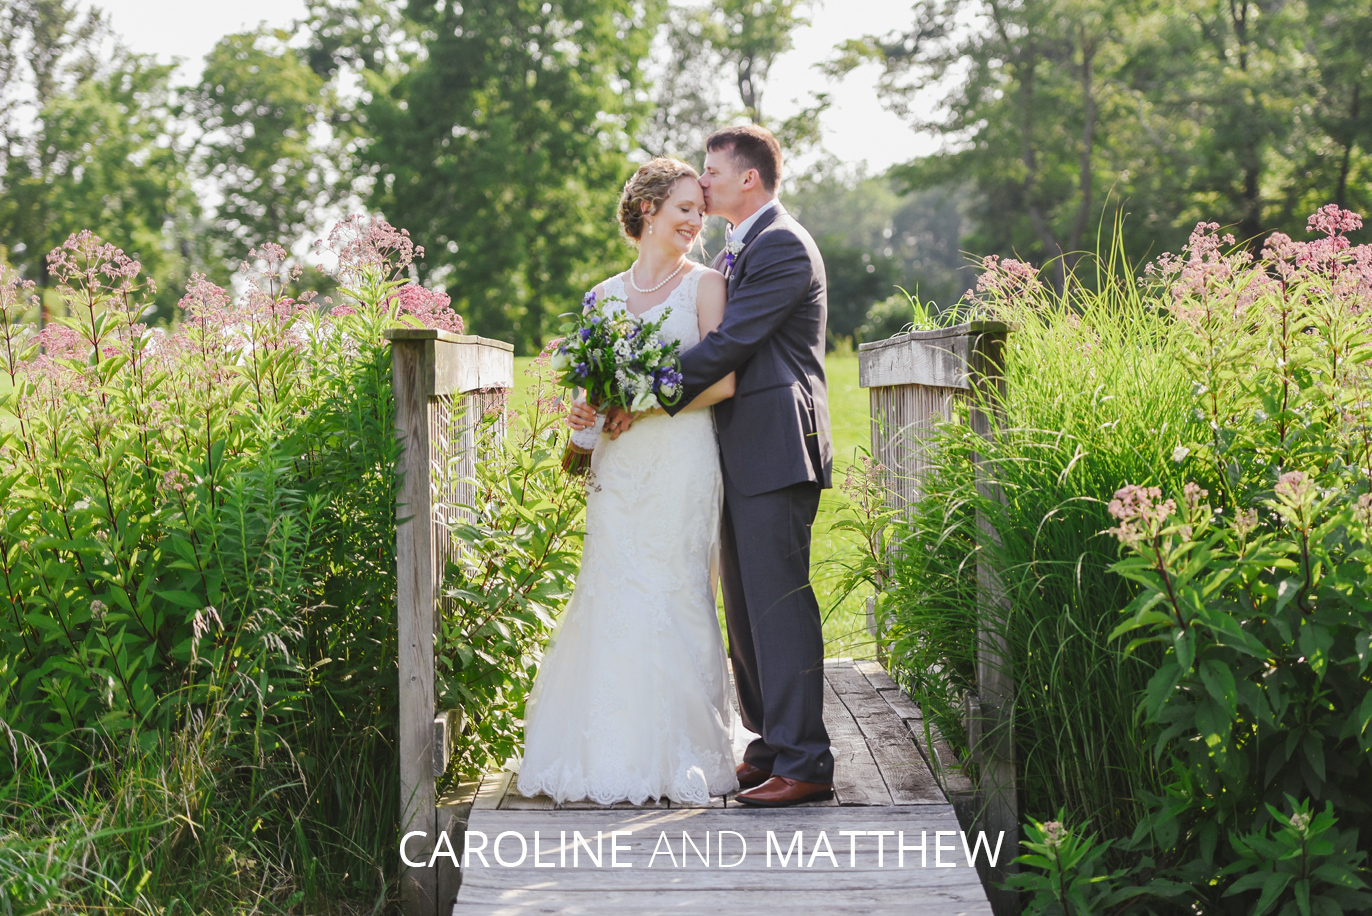 caroline and matthew on a bridge